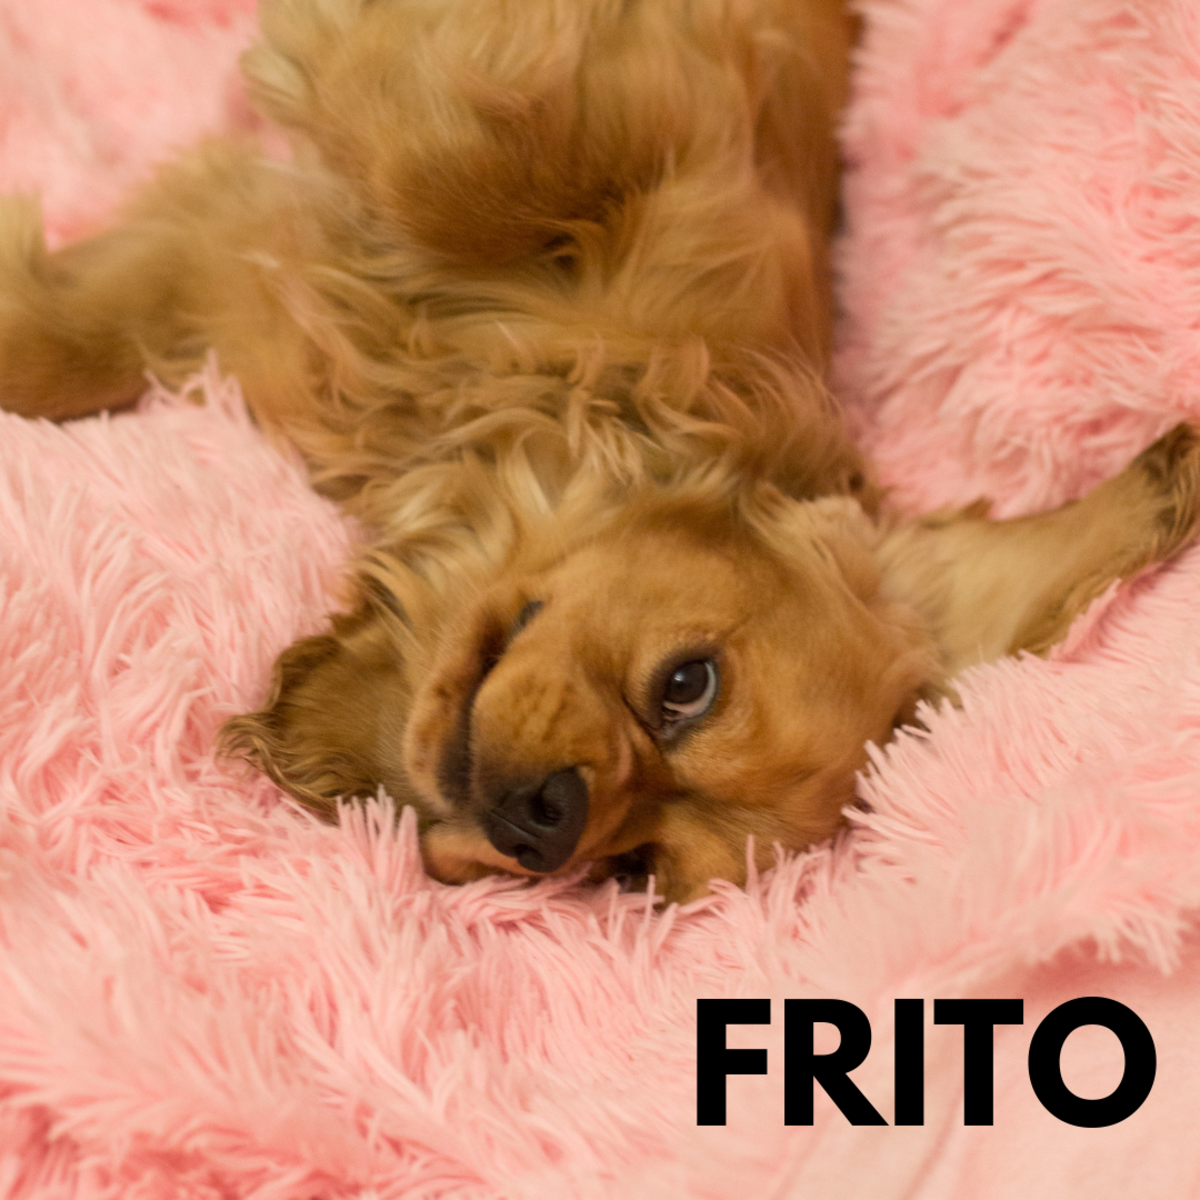 Is she a Frito?